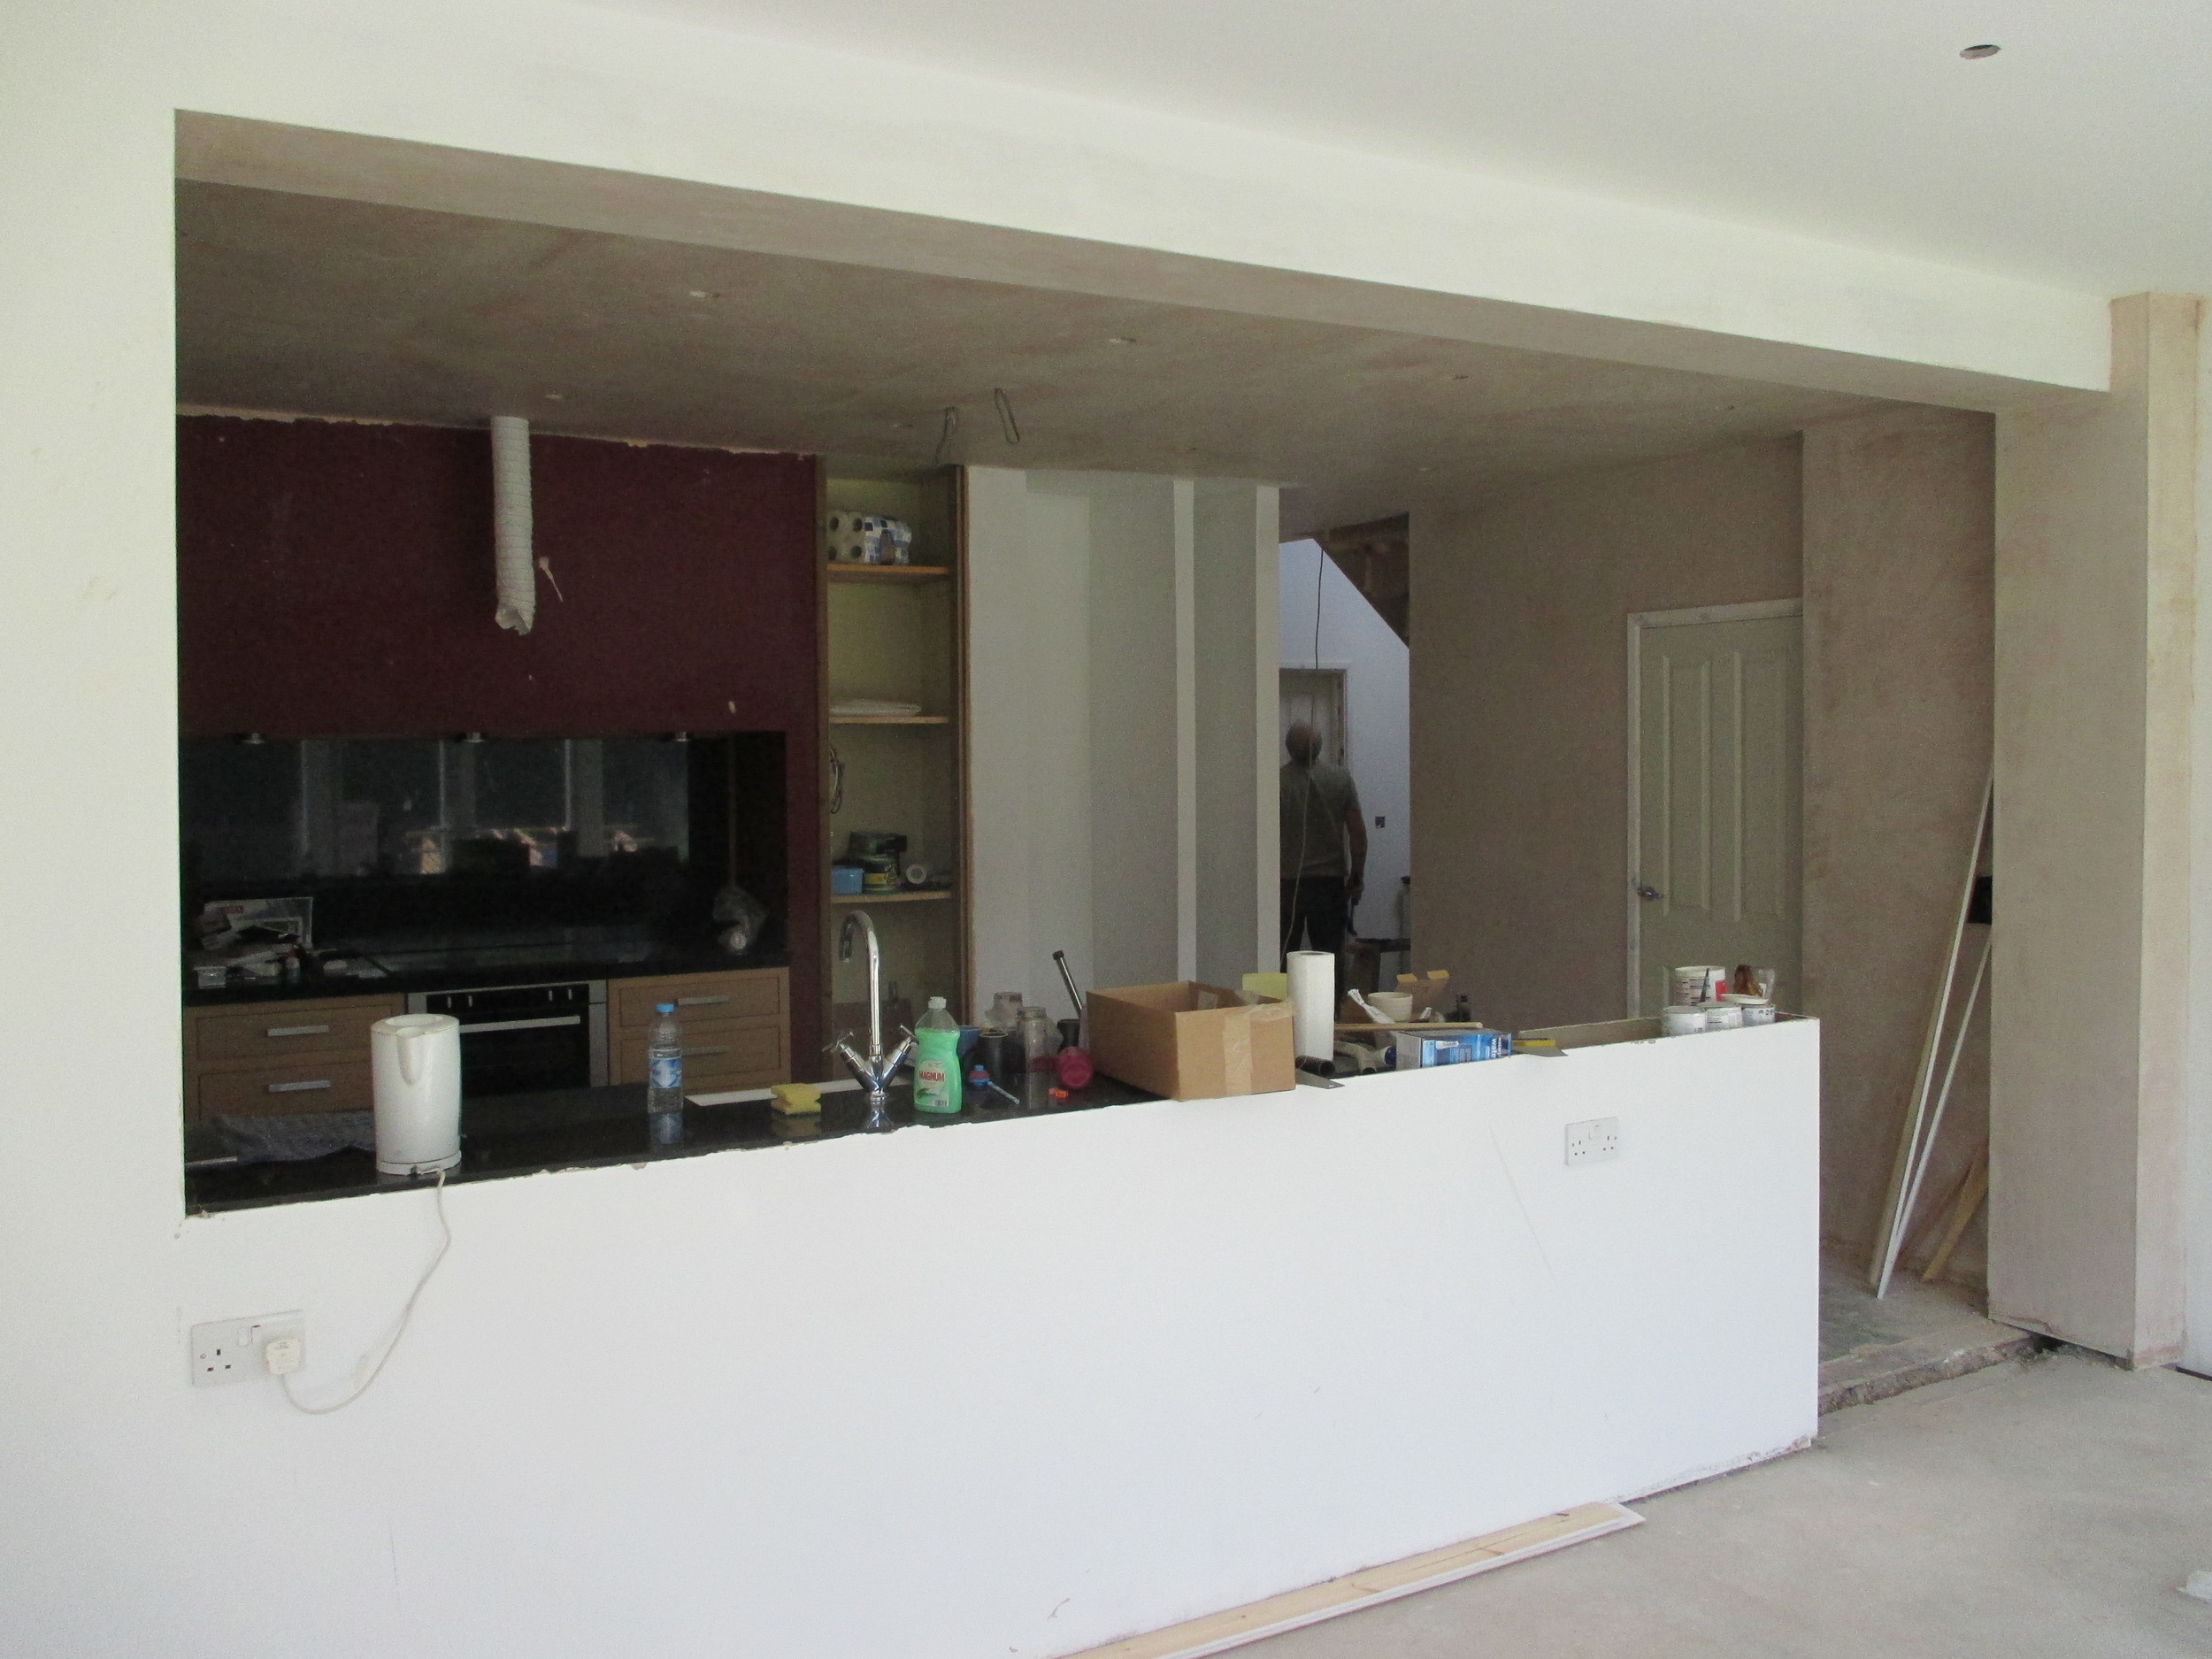 Conversion in Progress - New Breakfast / Garden Room into Kitchen and through to Entrance Hall.